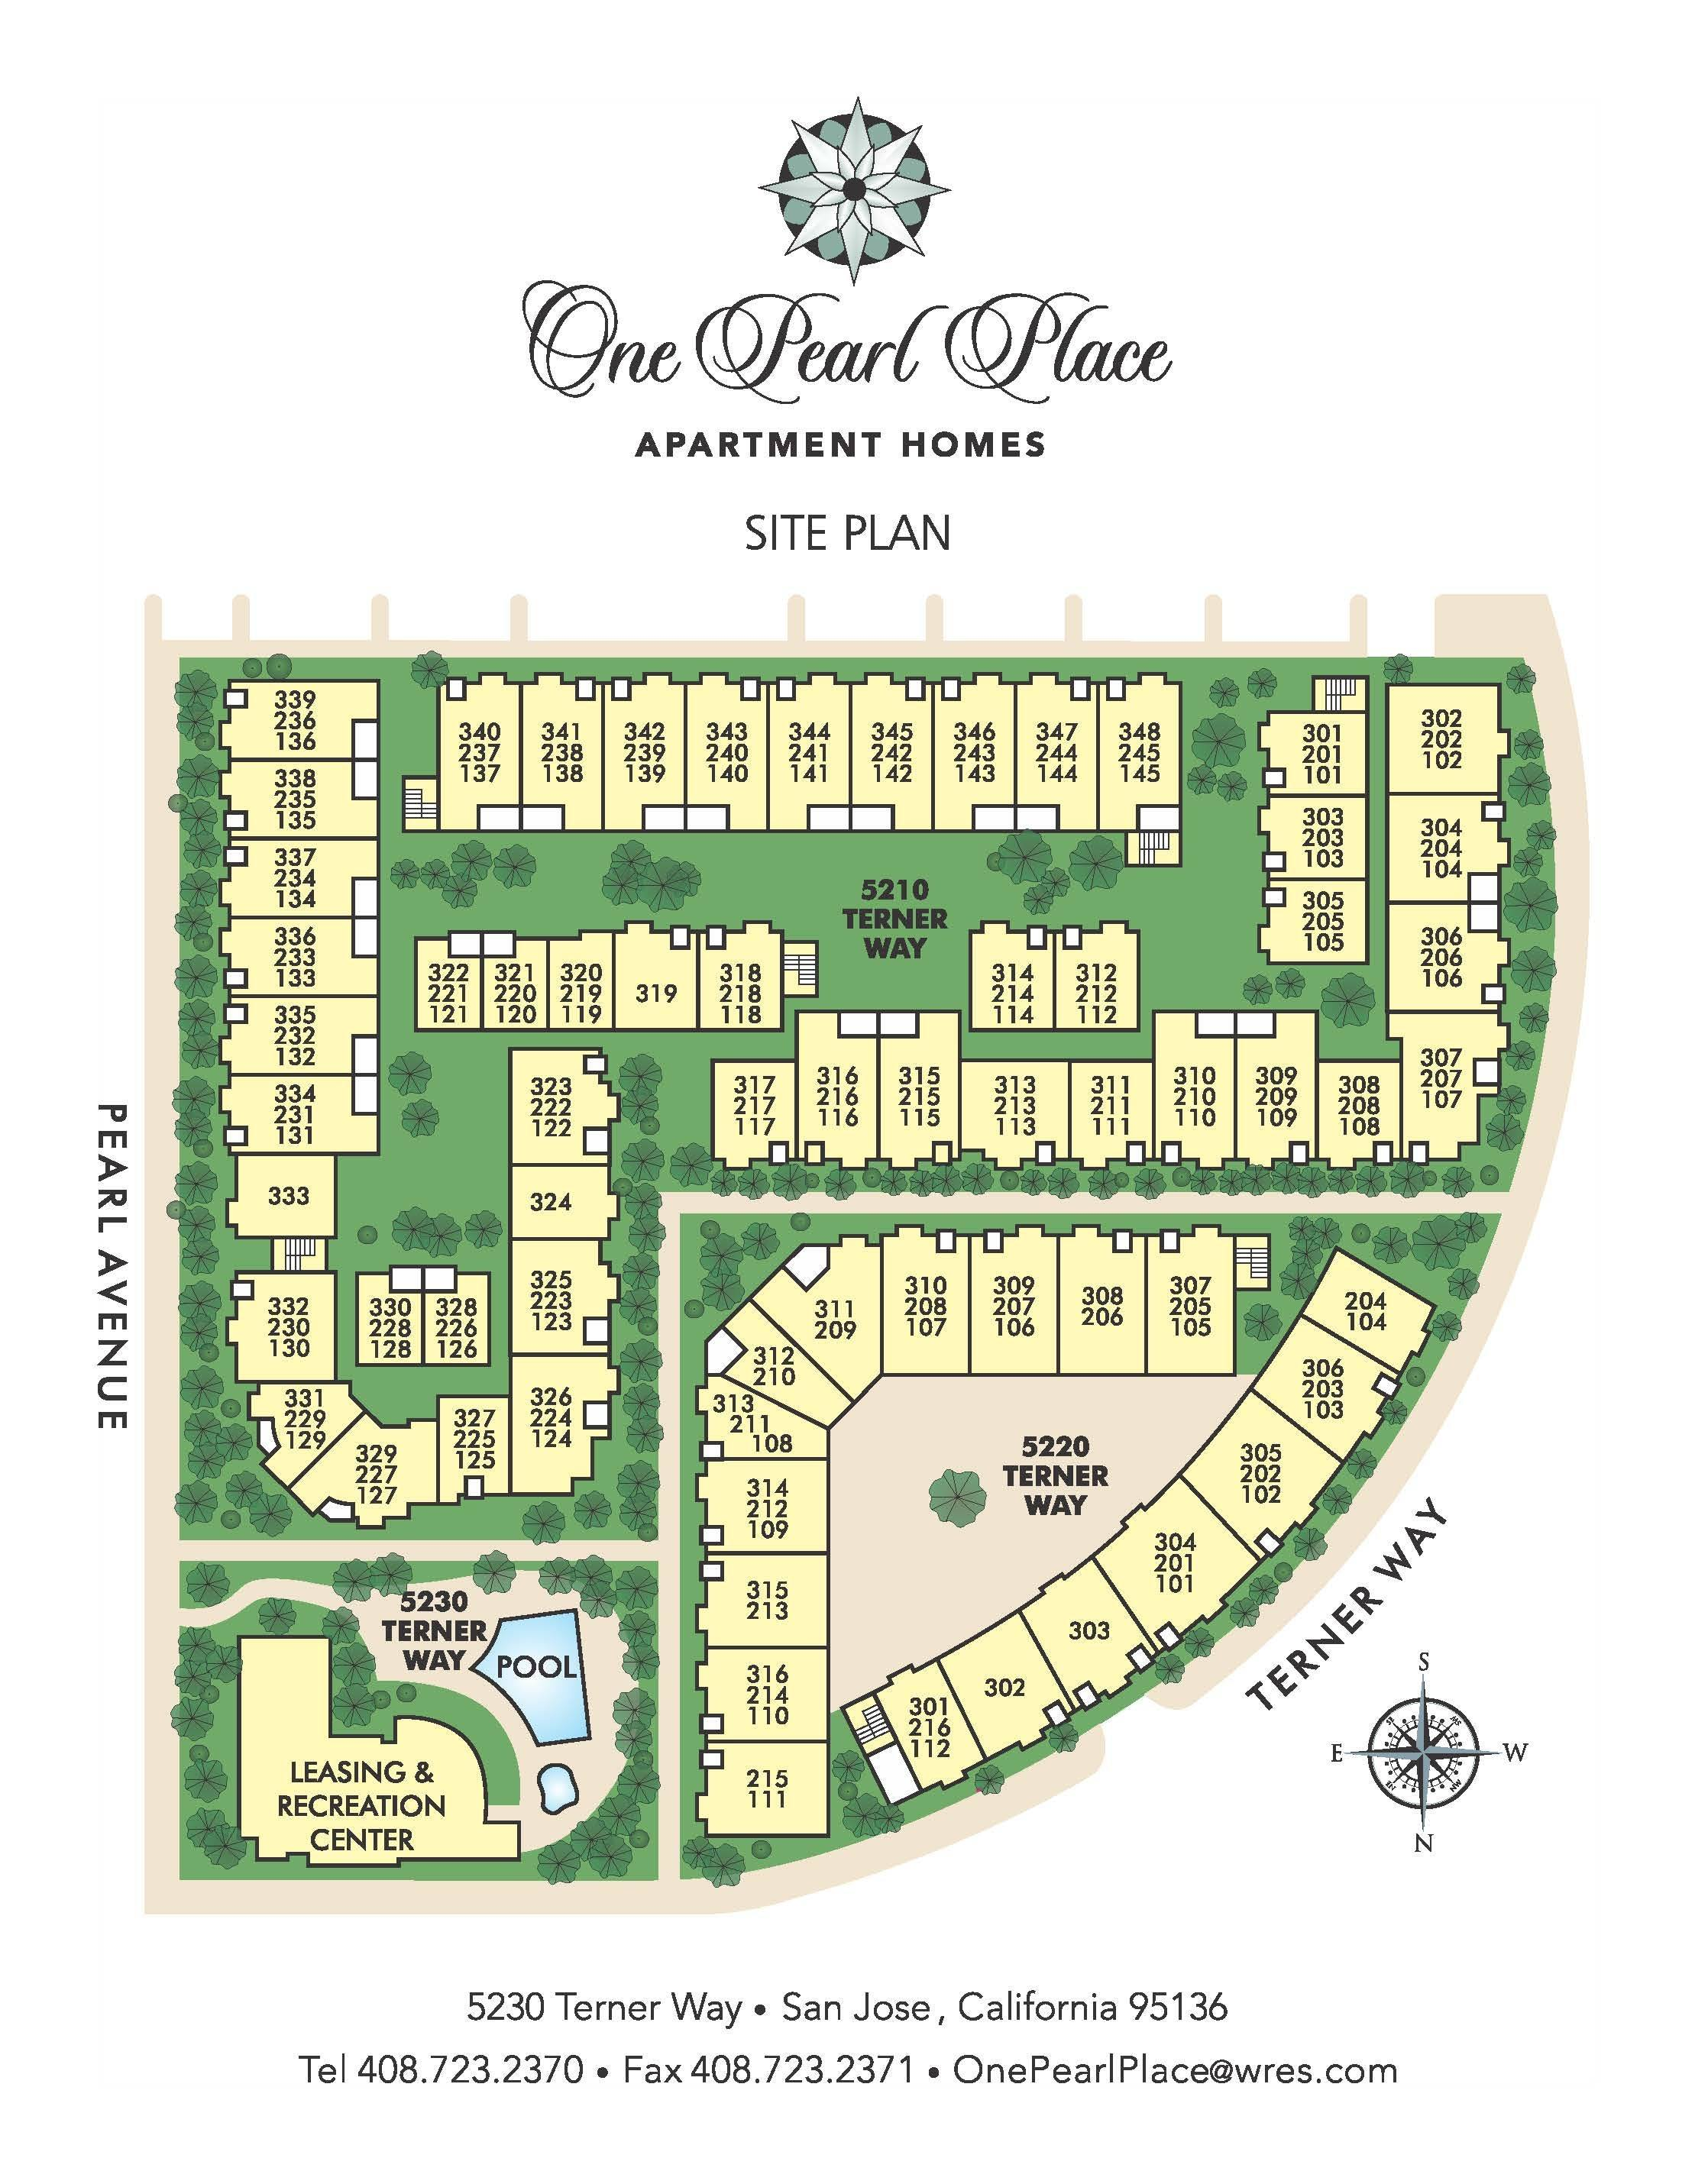 One Pearl Place sitemap